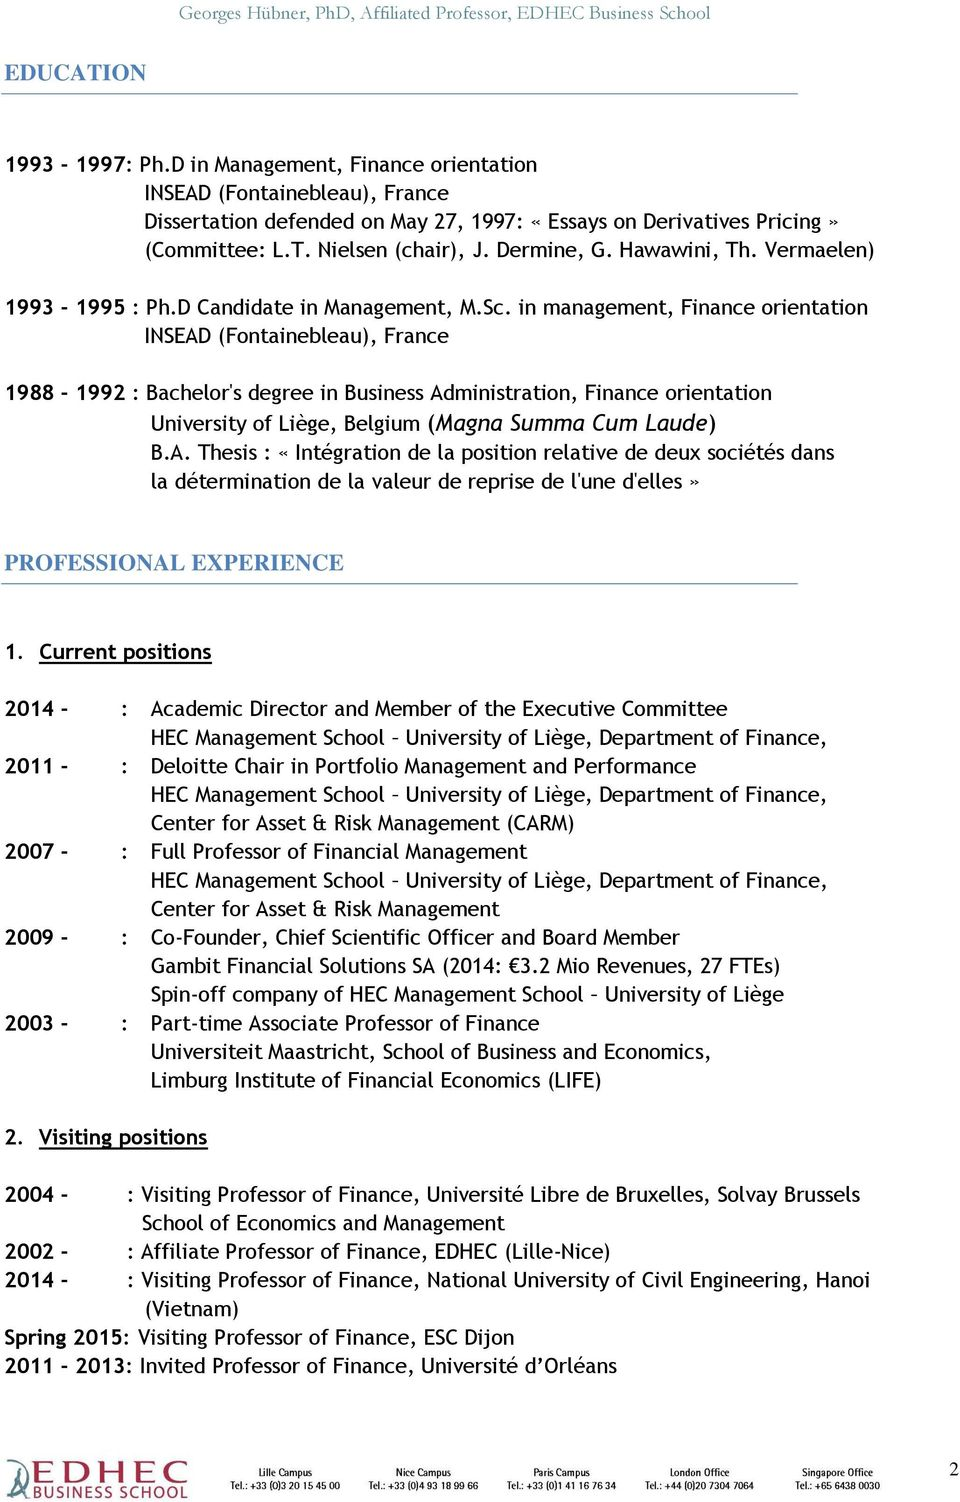 in management, Finance orientation INSEAD (Fontainebleau), France 1988-1992 : Bachelor's degree in Business Administration, Finance orientation University of Liège, Belgium (Magna Summa Cum Laude) B.